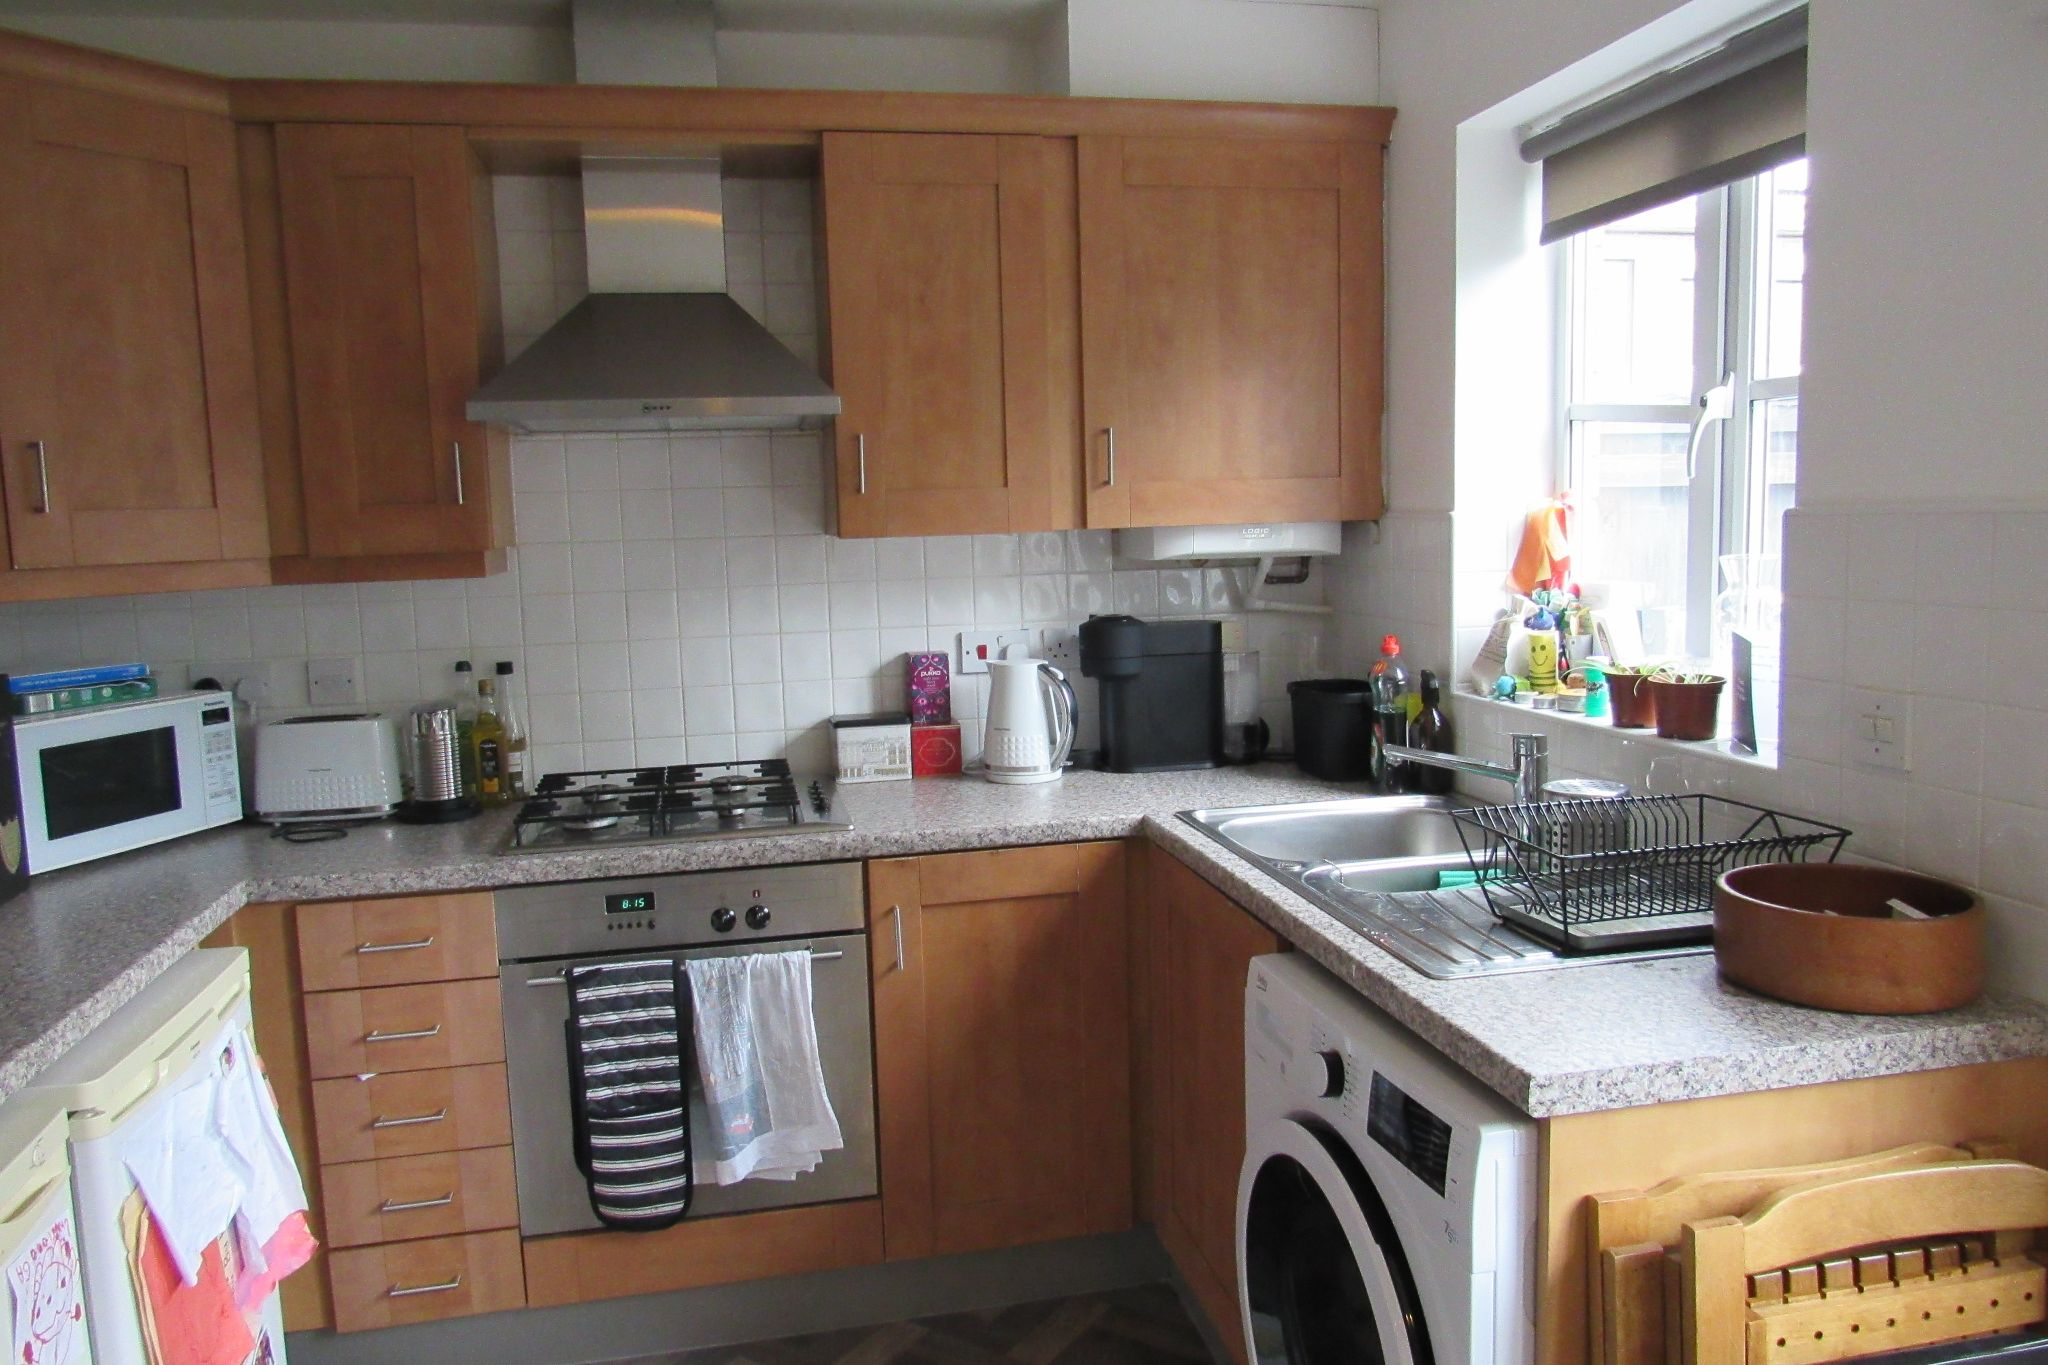 2 bedroom mid terraced house SSTC in Manchester - Photograph 7.